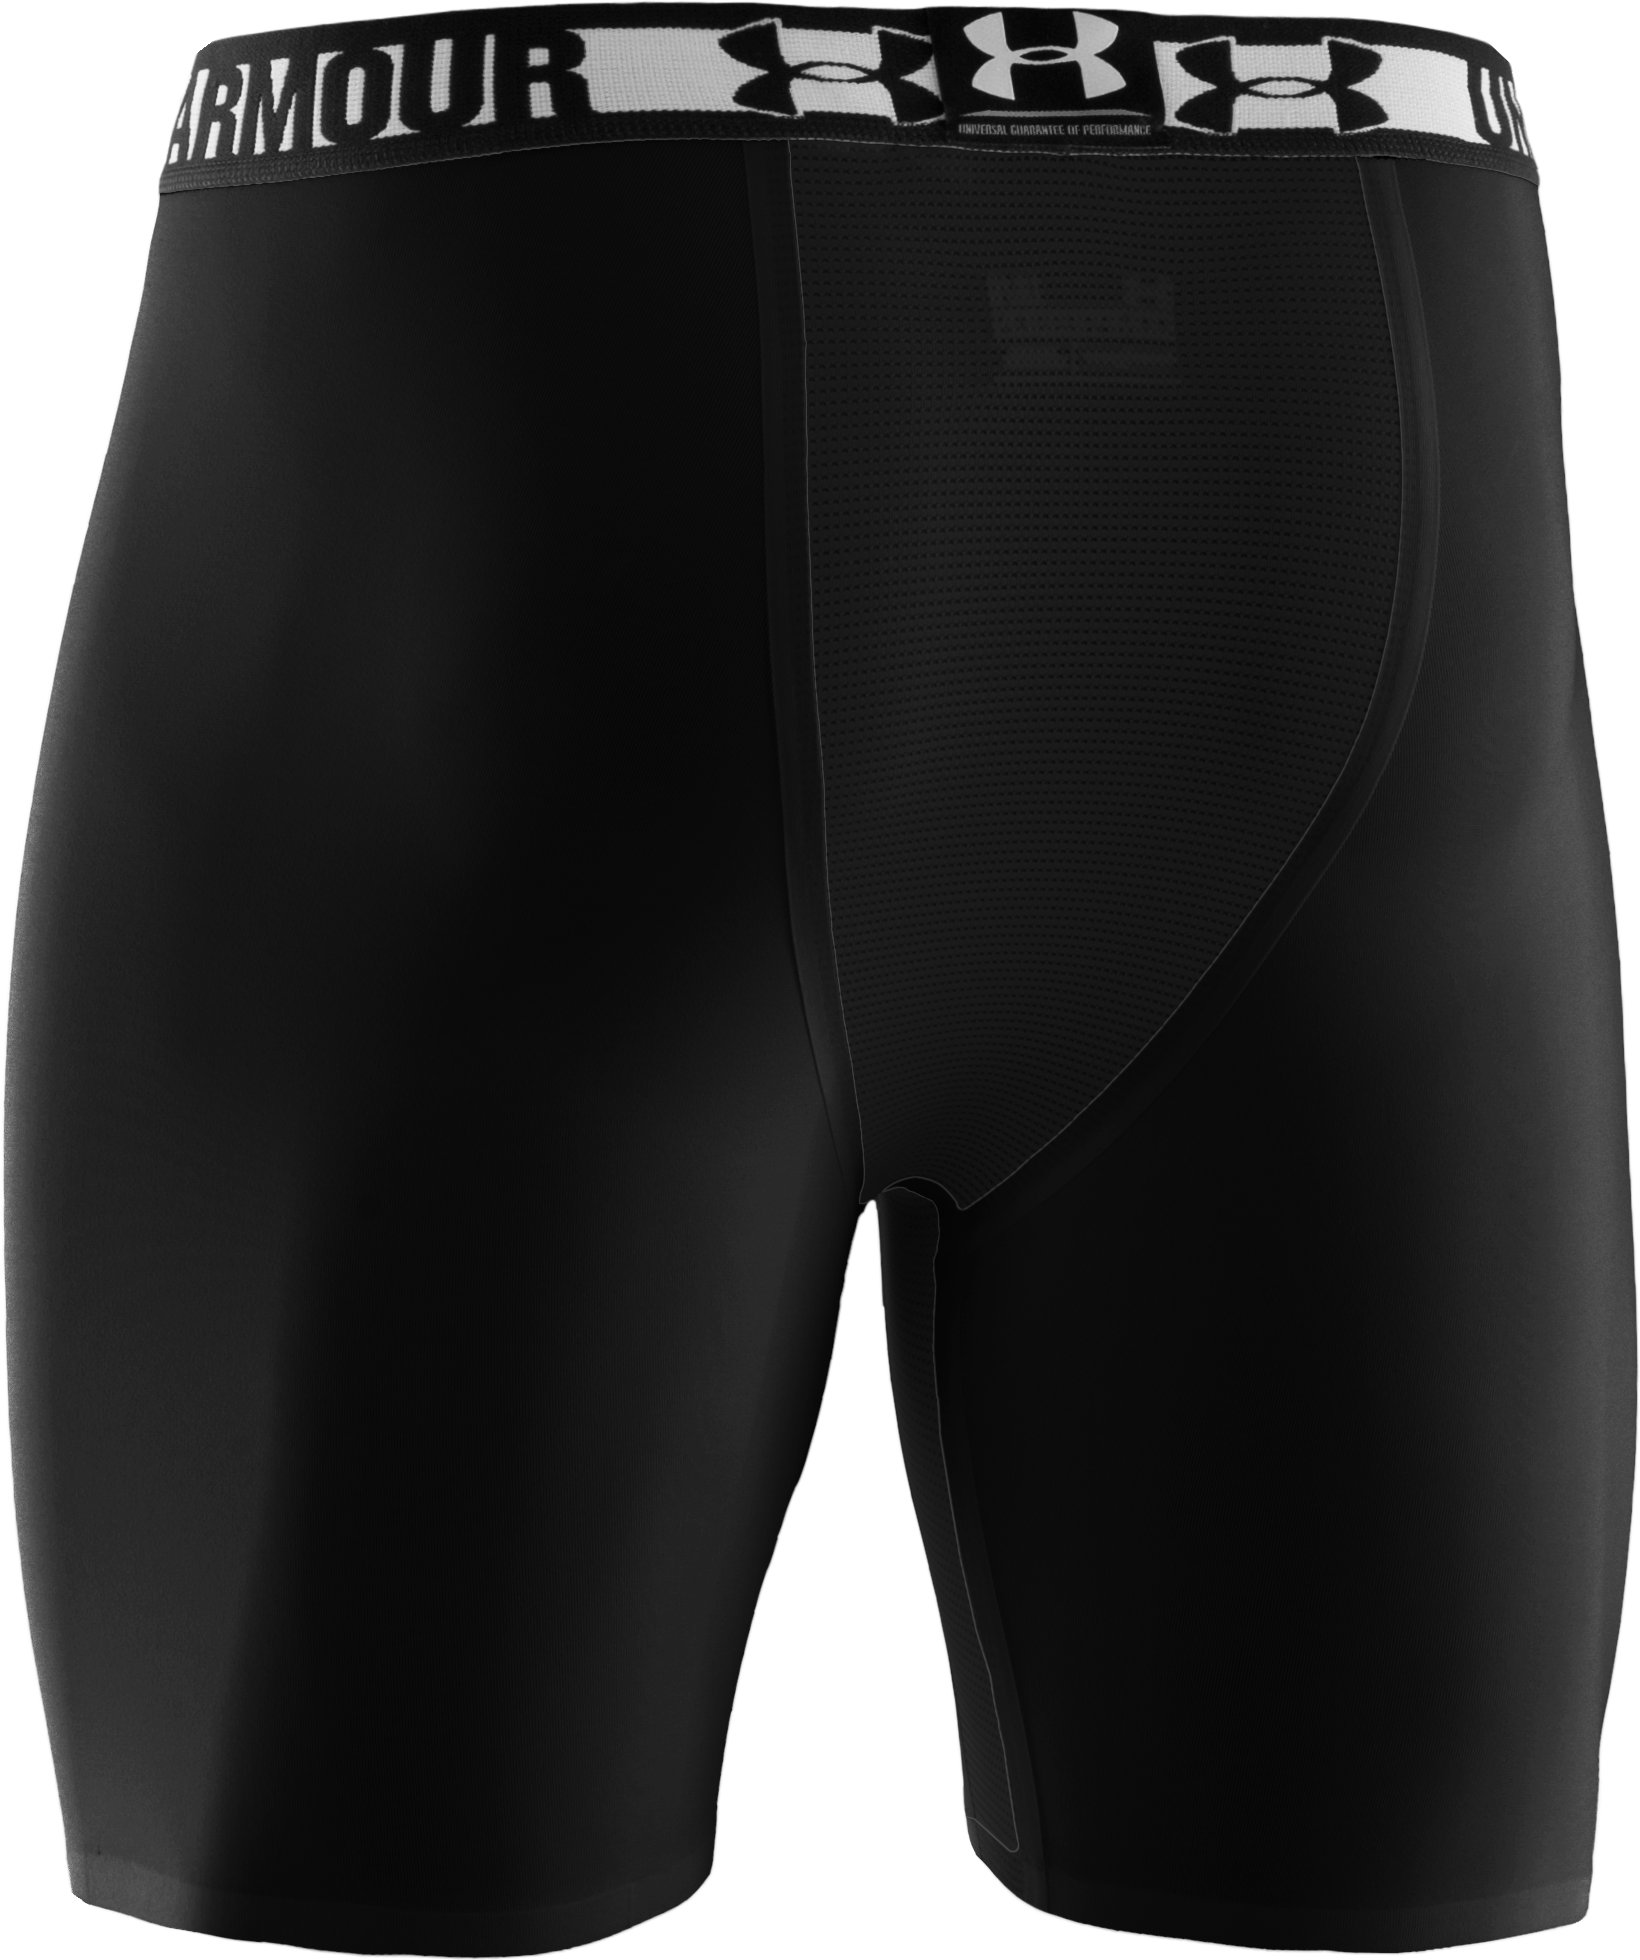 "Men's HeatGear® Dynasty Vented 6"" Compression Shorts, Black , undefined"